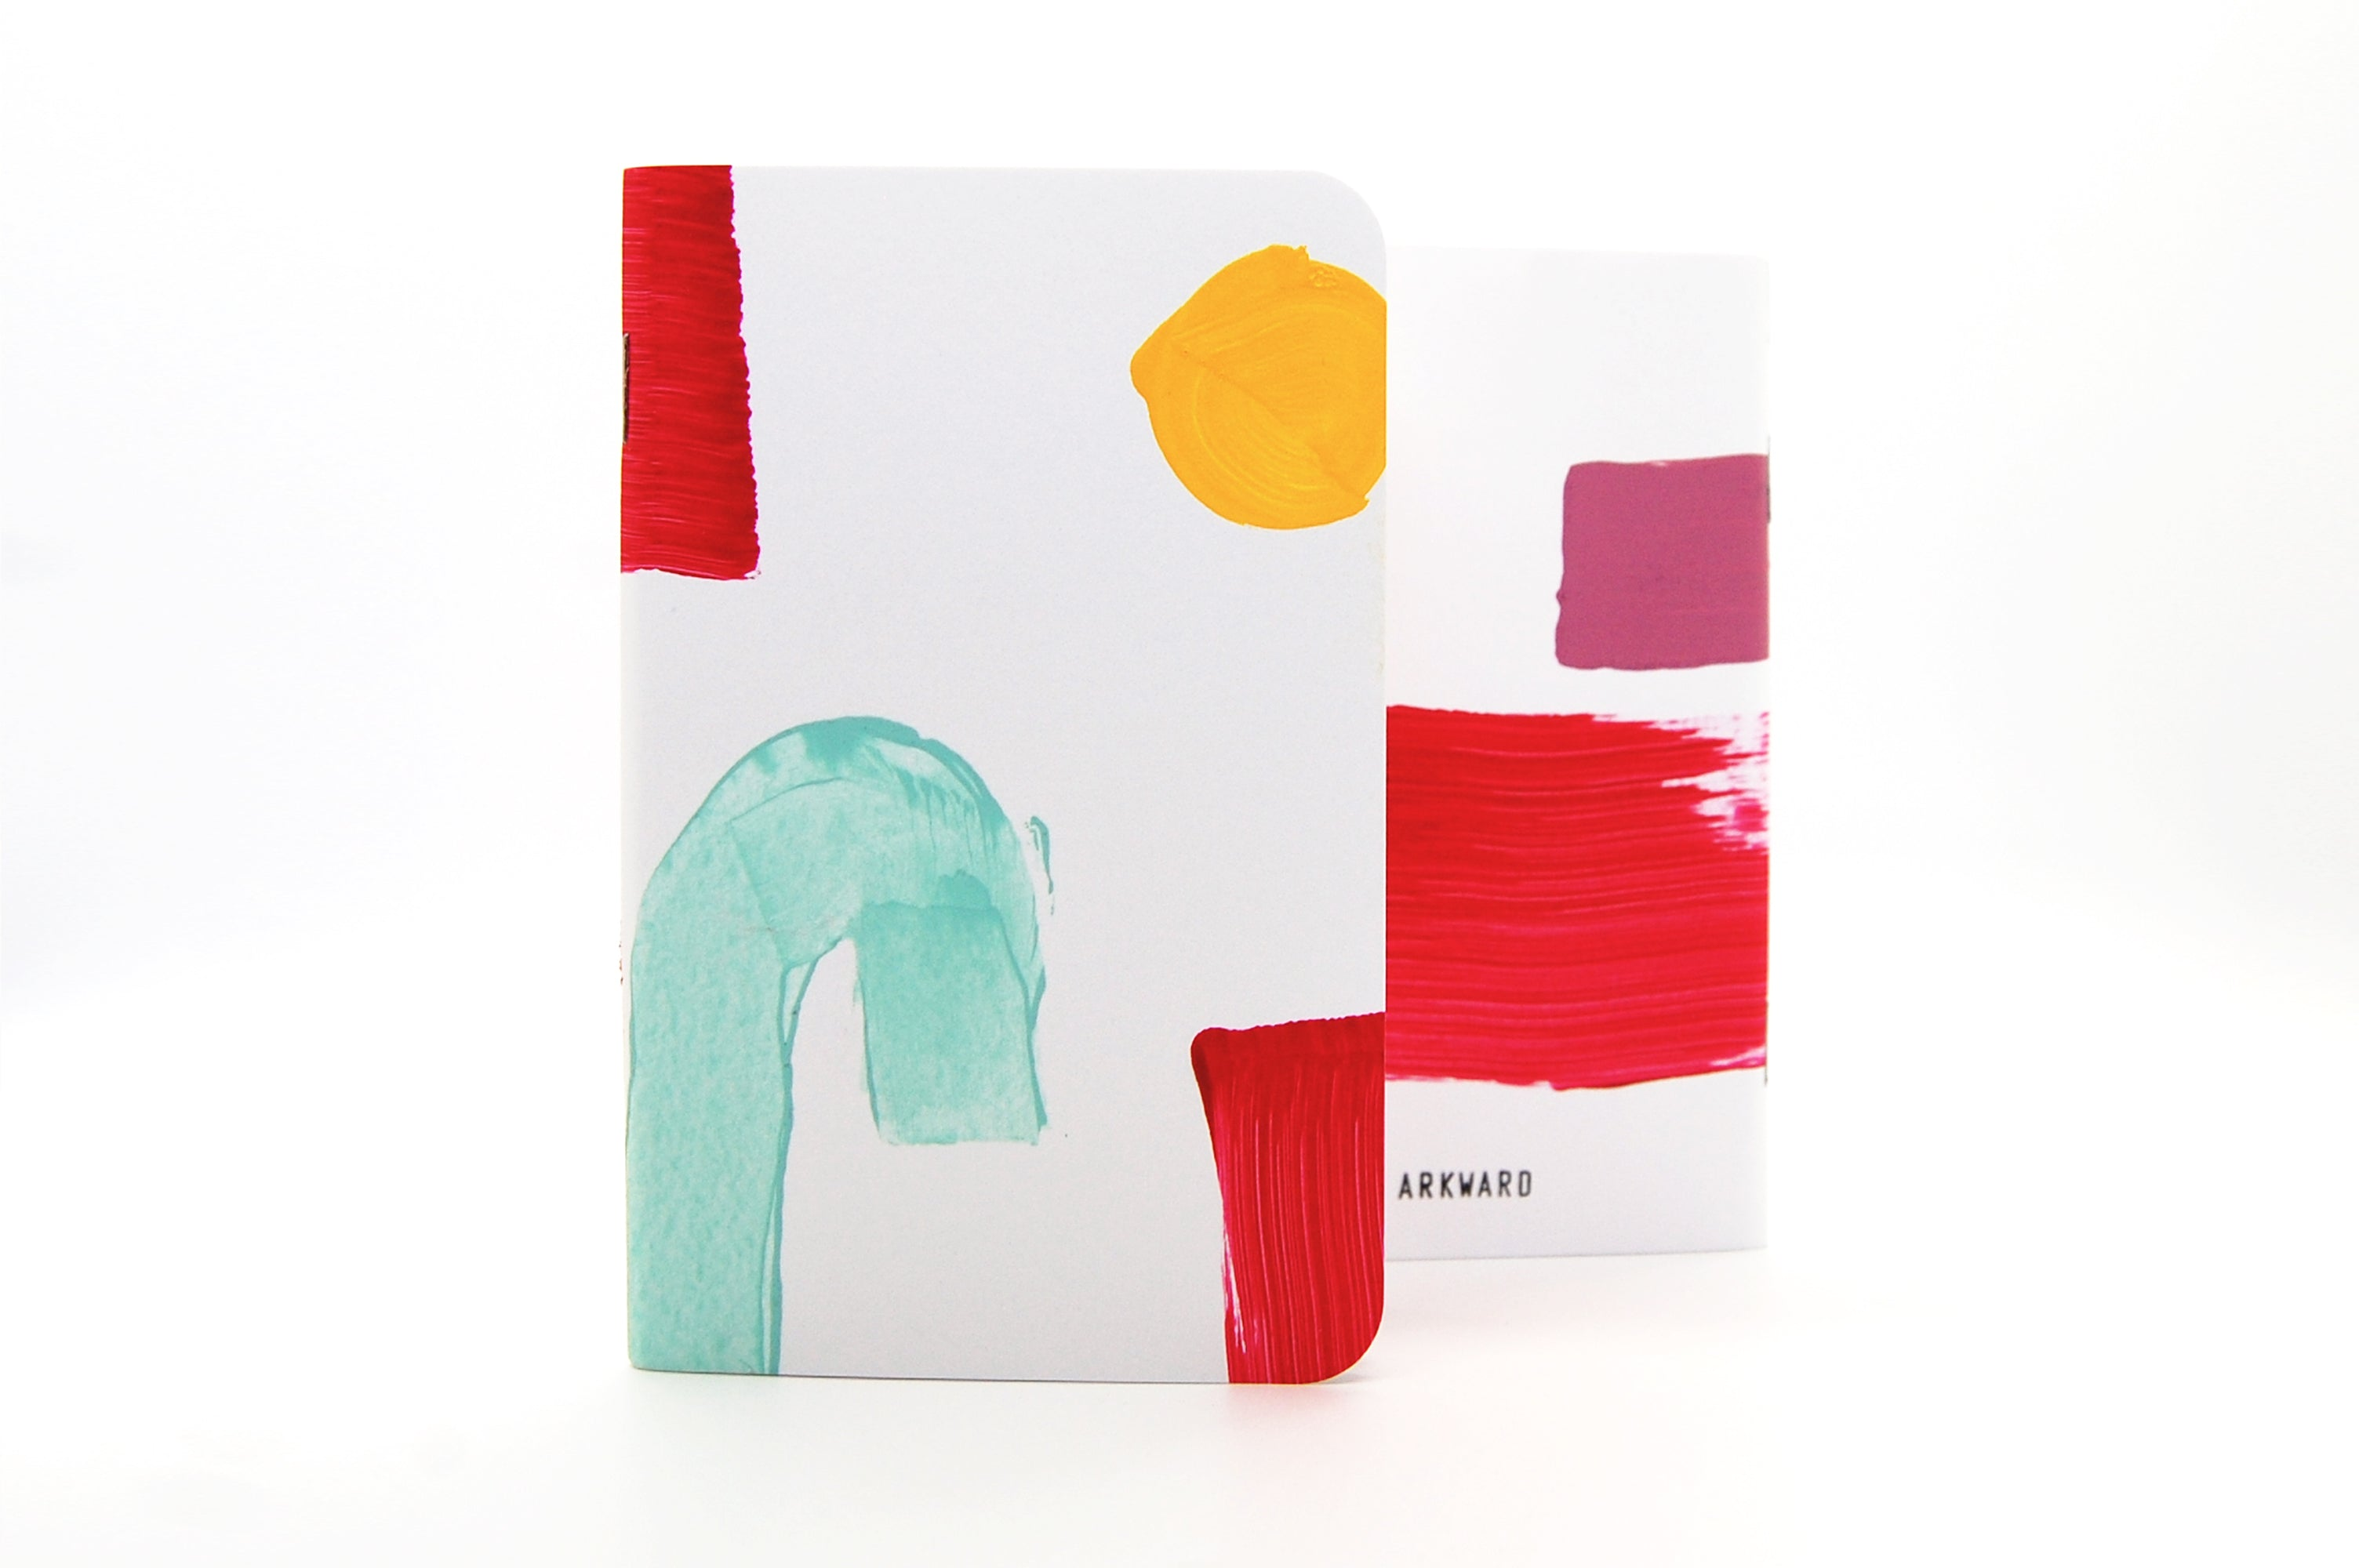 Arkward_Summer Colors_Stationery_Notebook